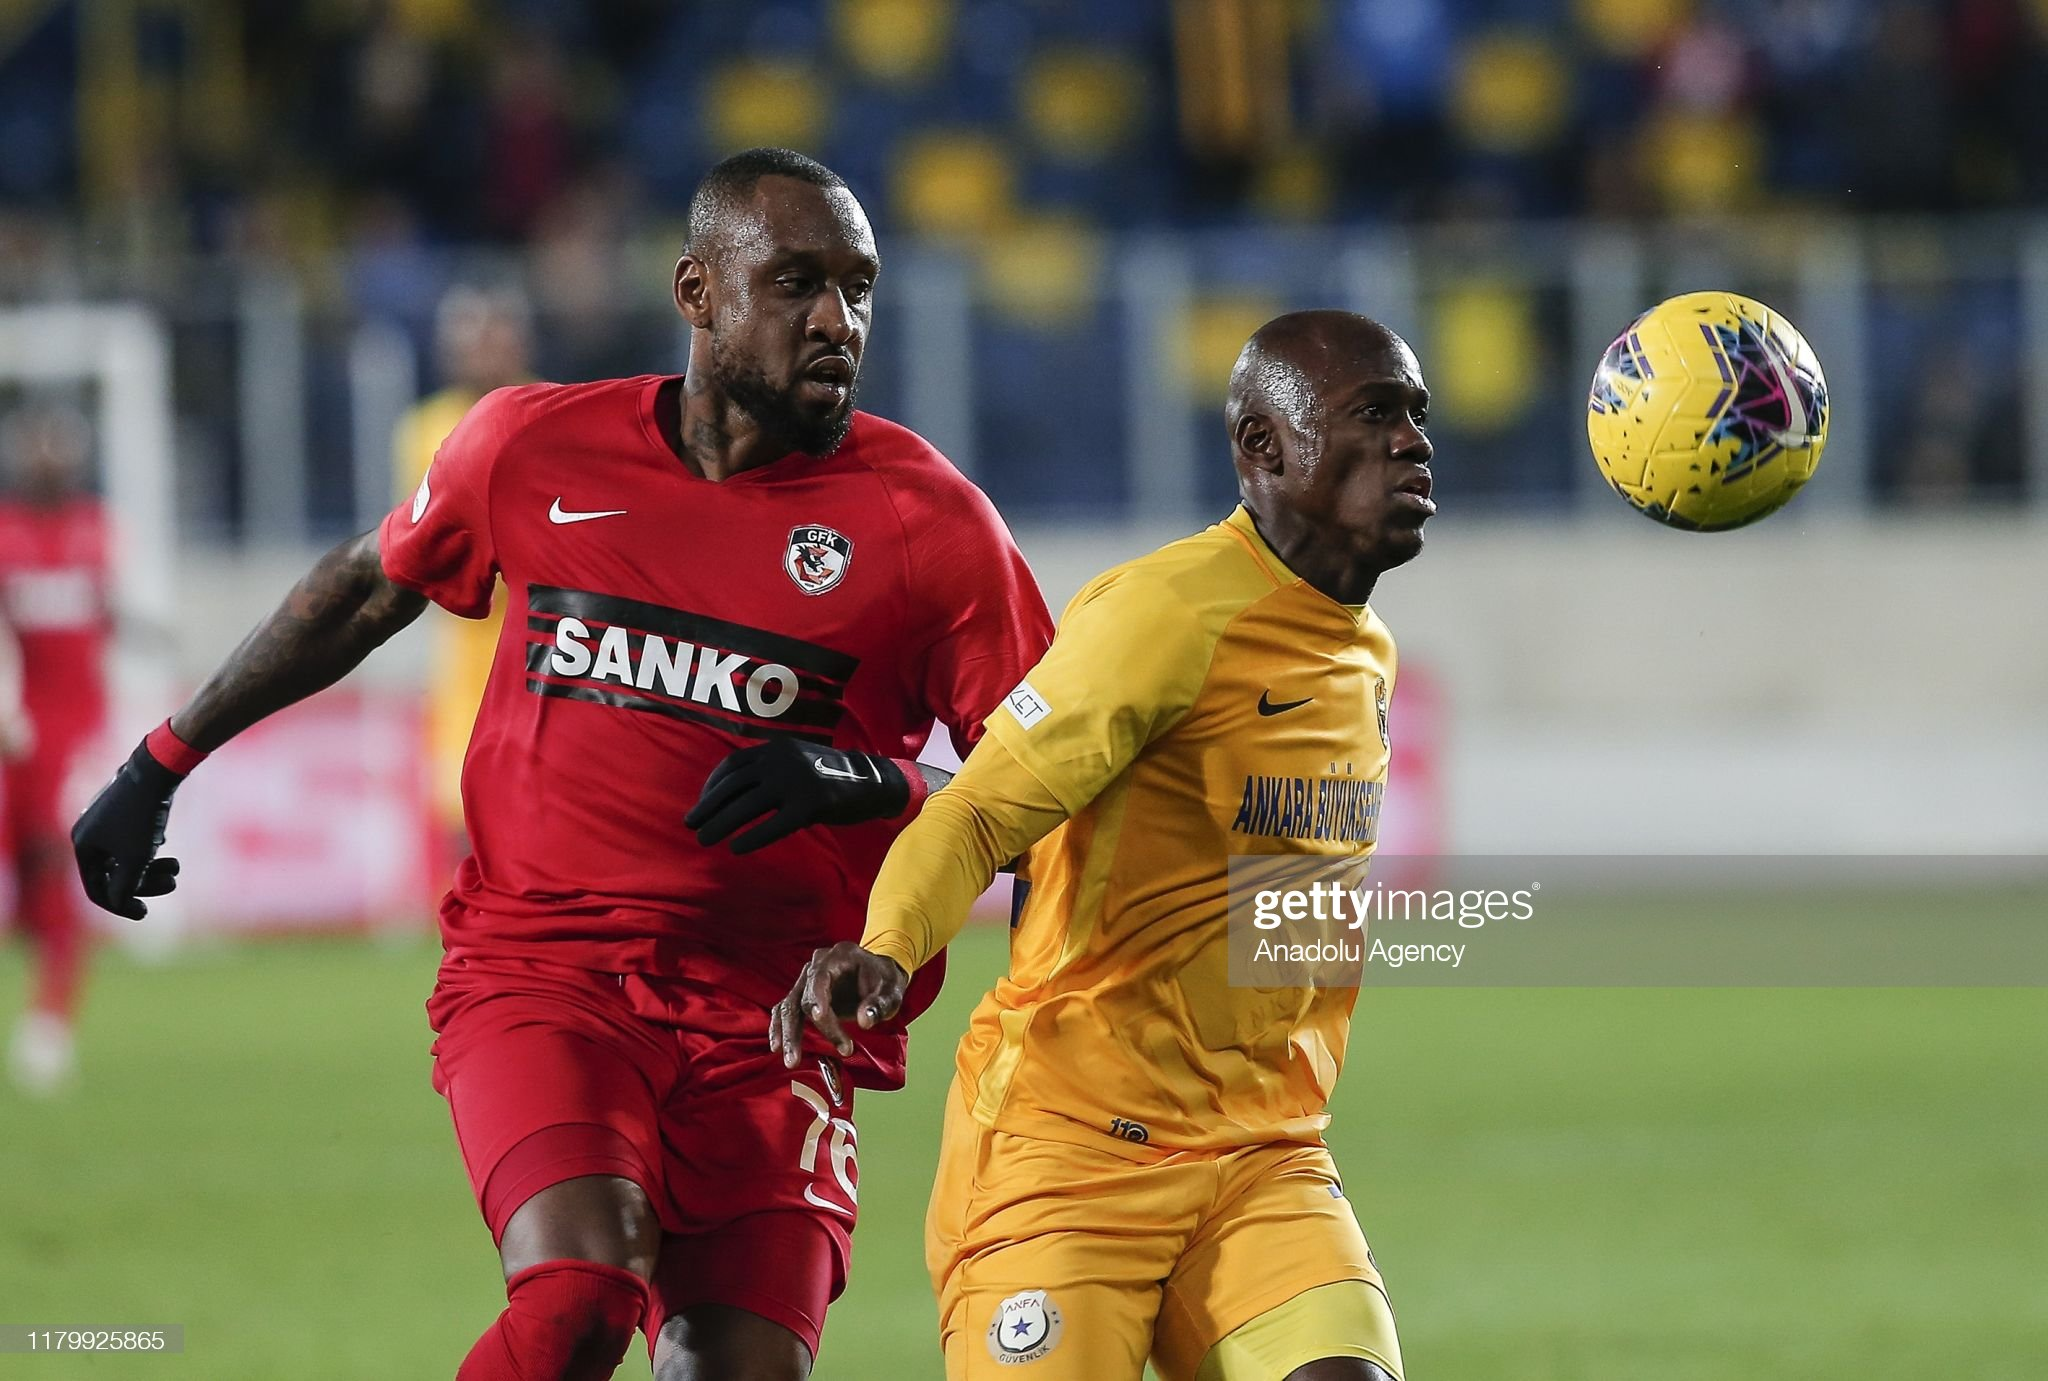 Gaziantep v Ankaragucu Preview, prediction and odds